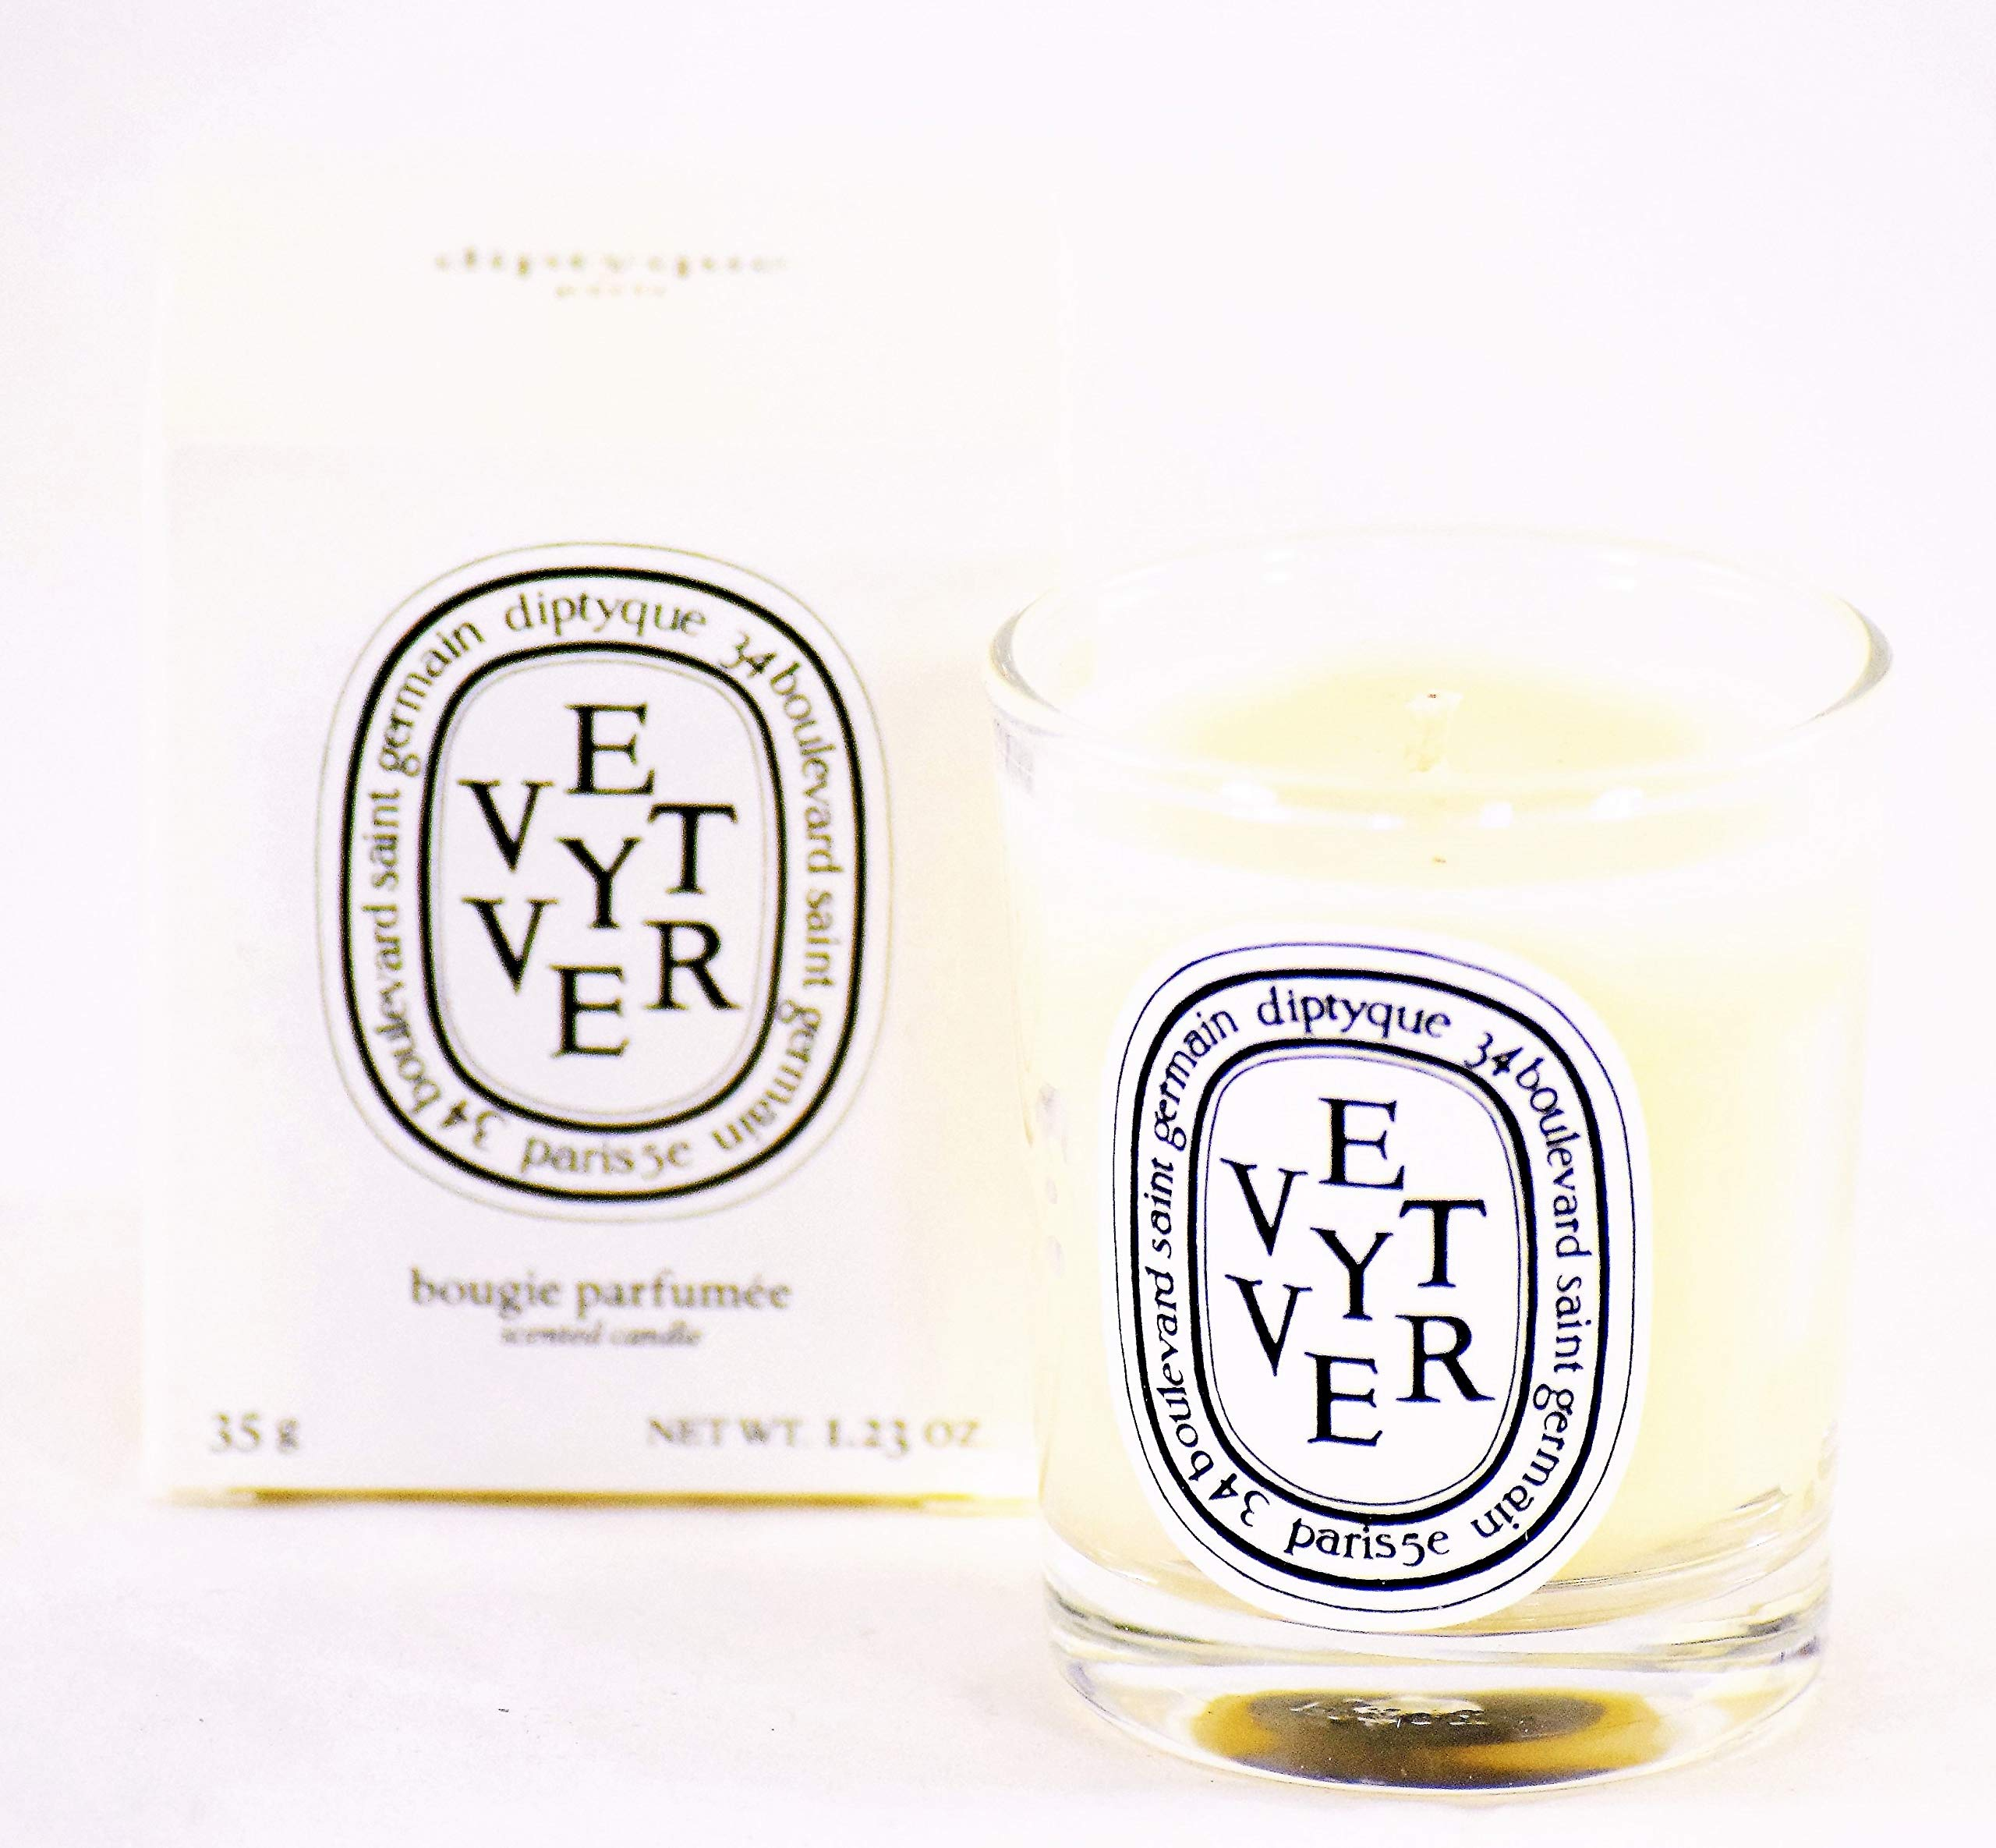 Diptyque Vétyver Mini Scented Candle - 1.23 oz (35 Grams) Travel Size